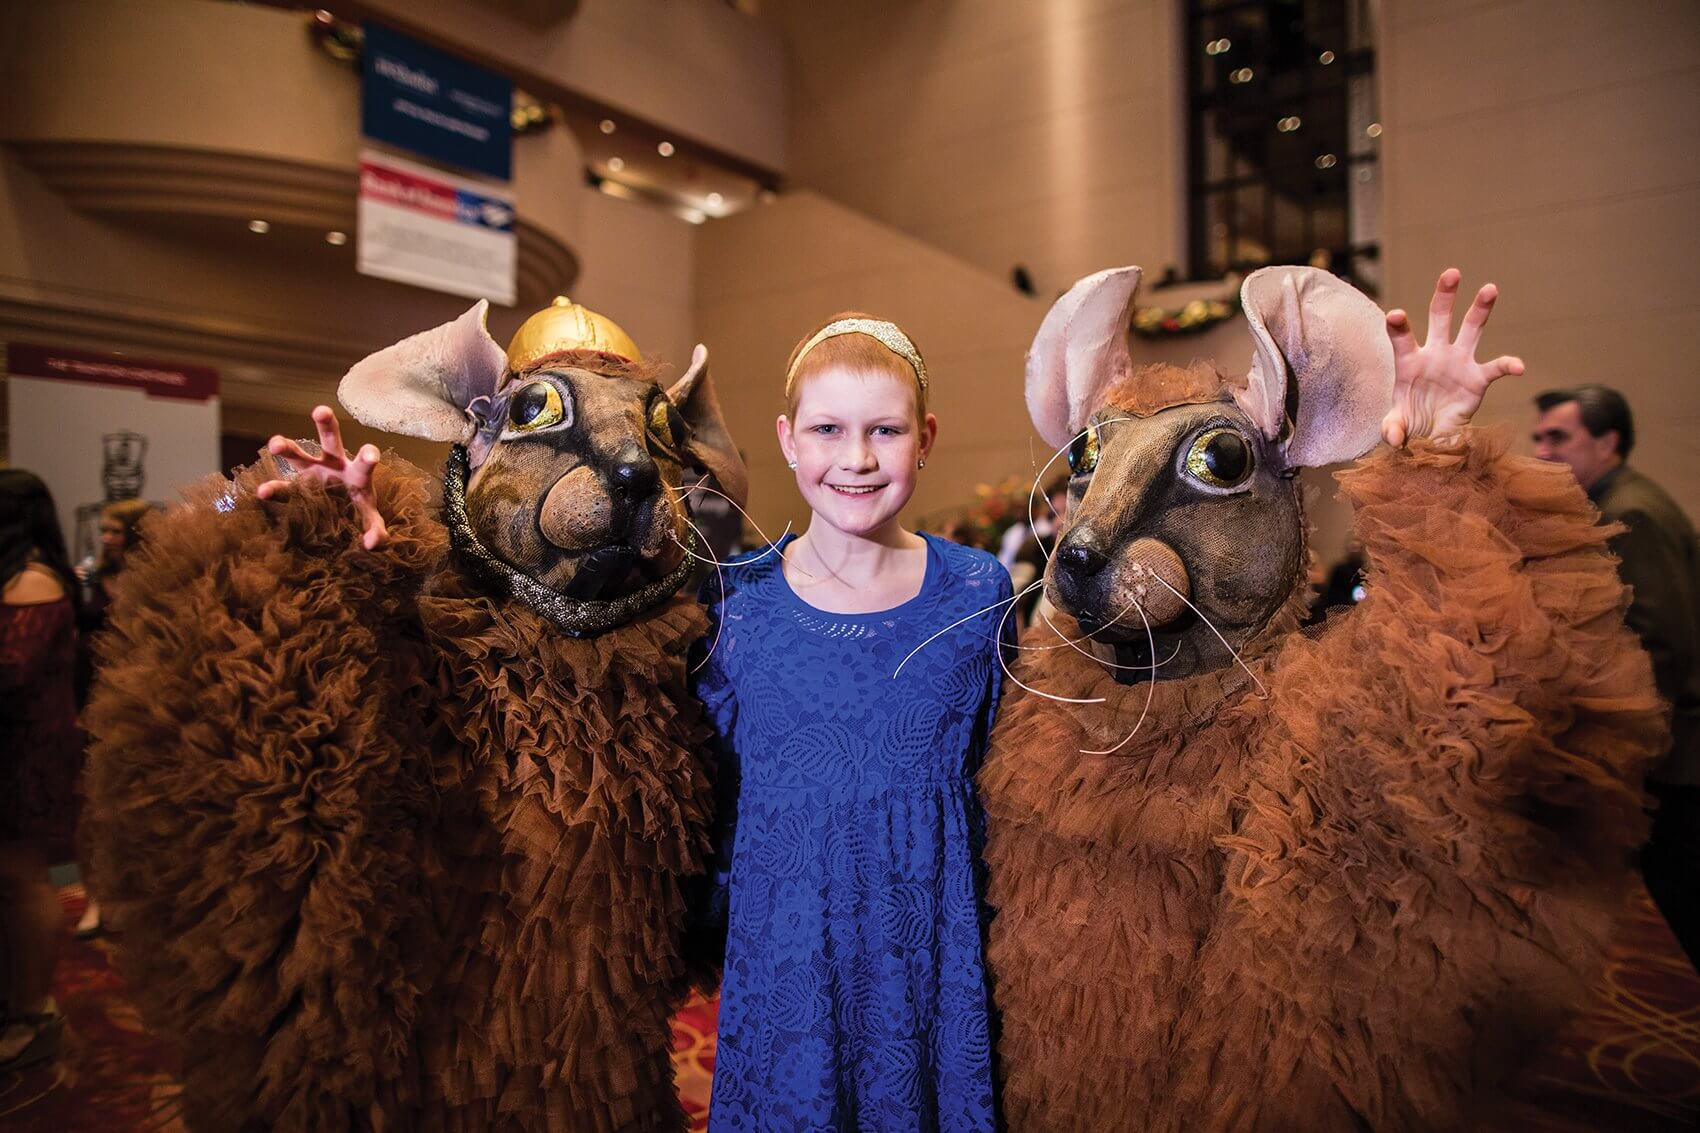 Peyton, pictured with the dancing rats from the Nutcracker, after the Houston Ballet revealed her Rose Parade costume.